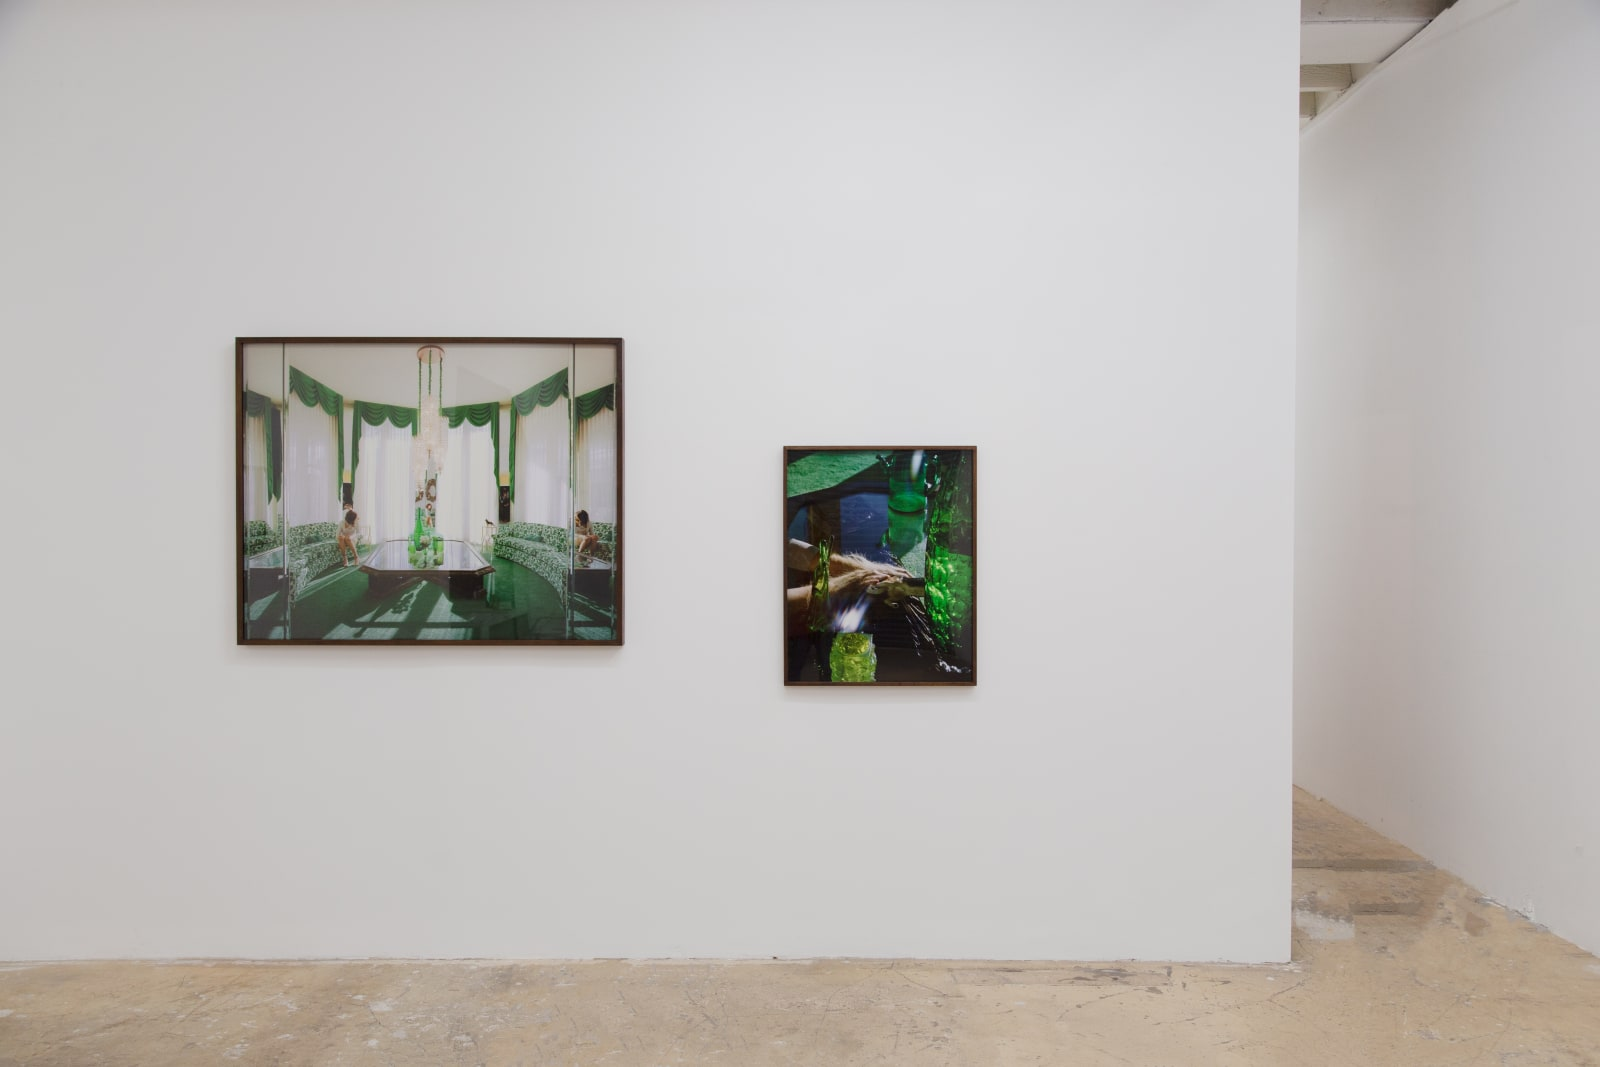 Installation view, Unsex me here